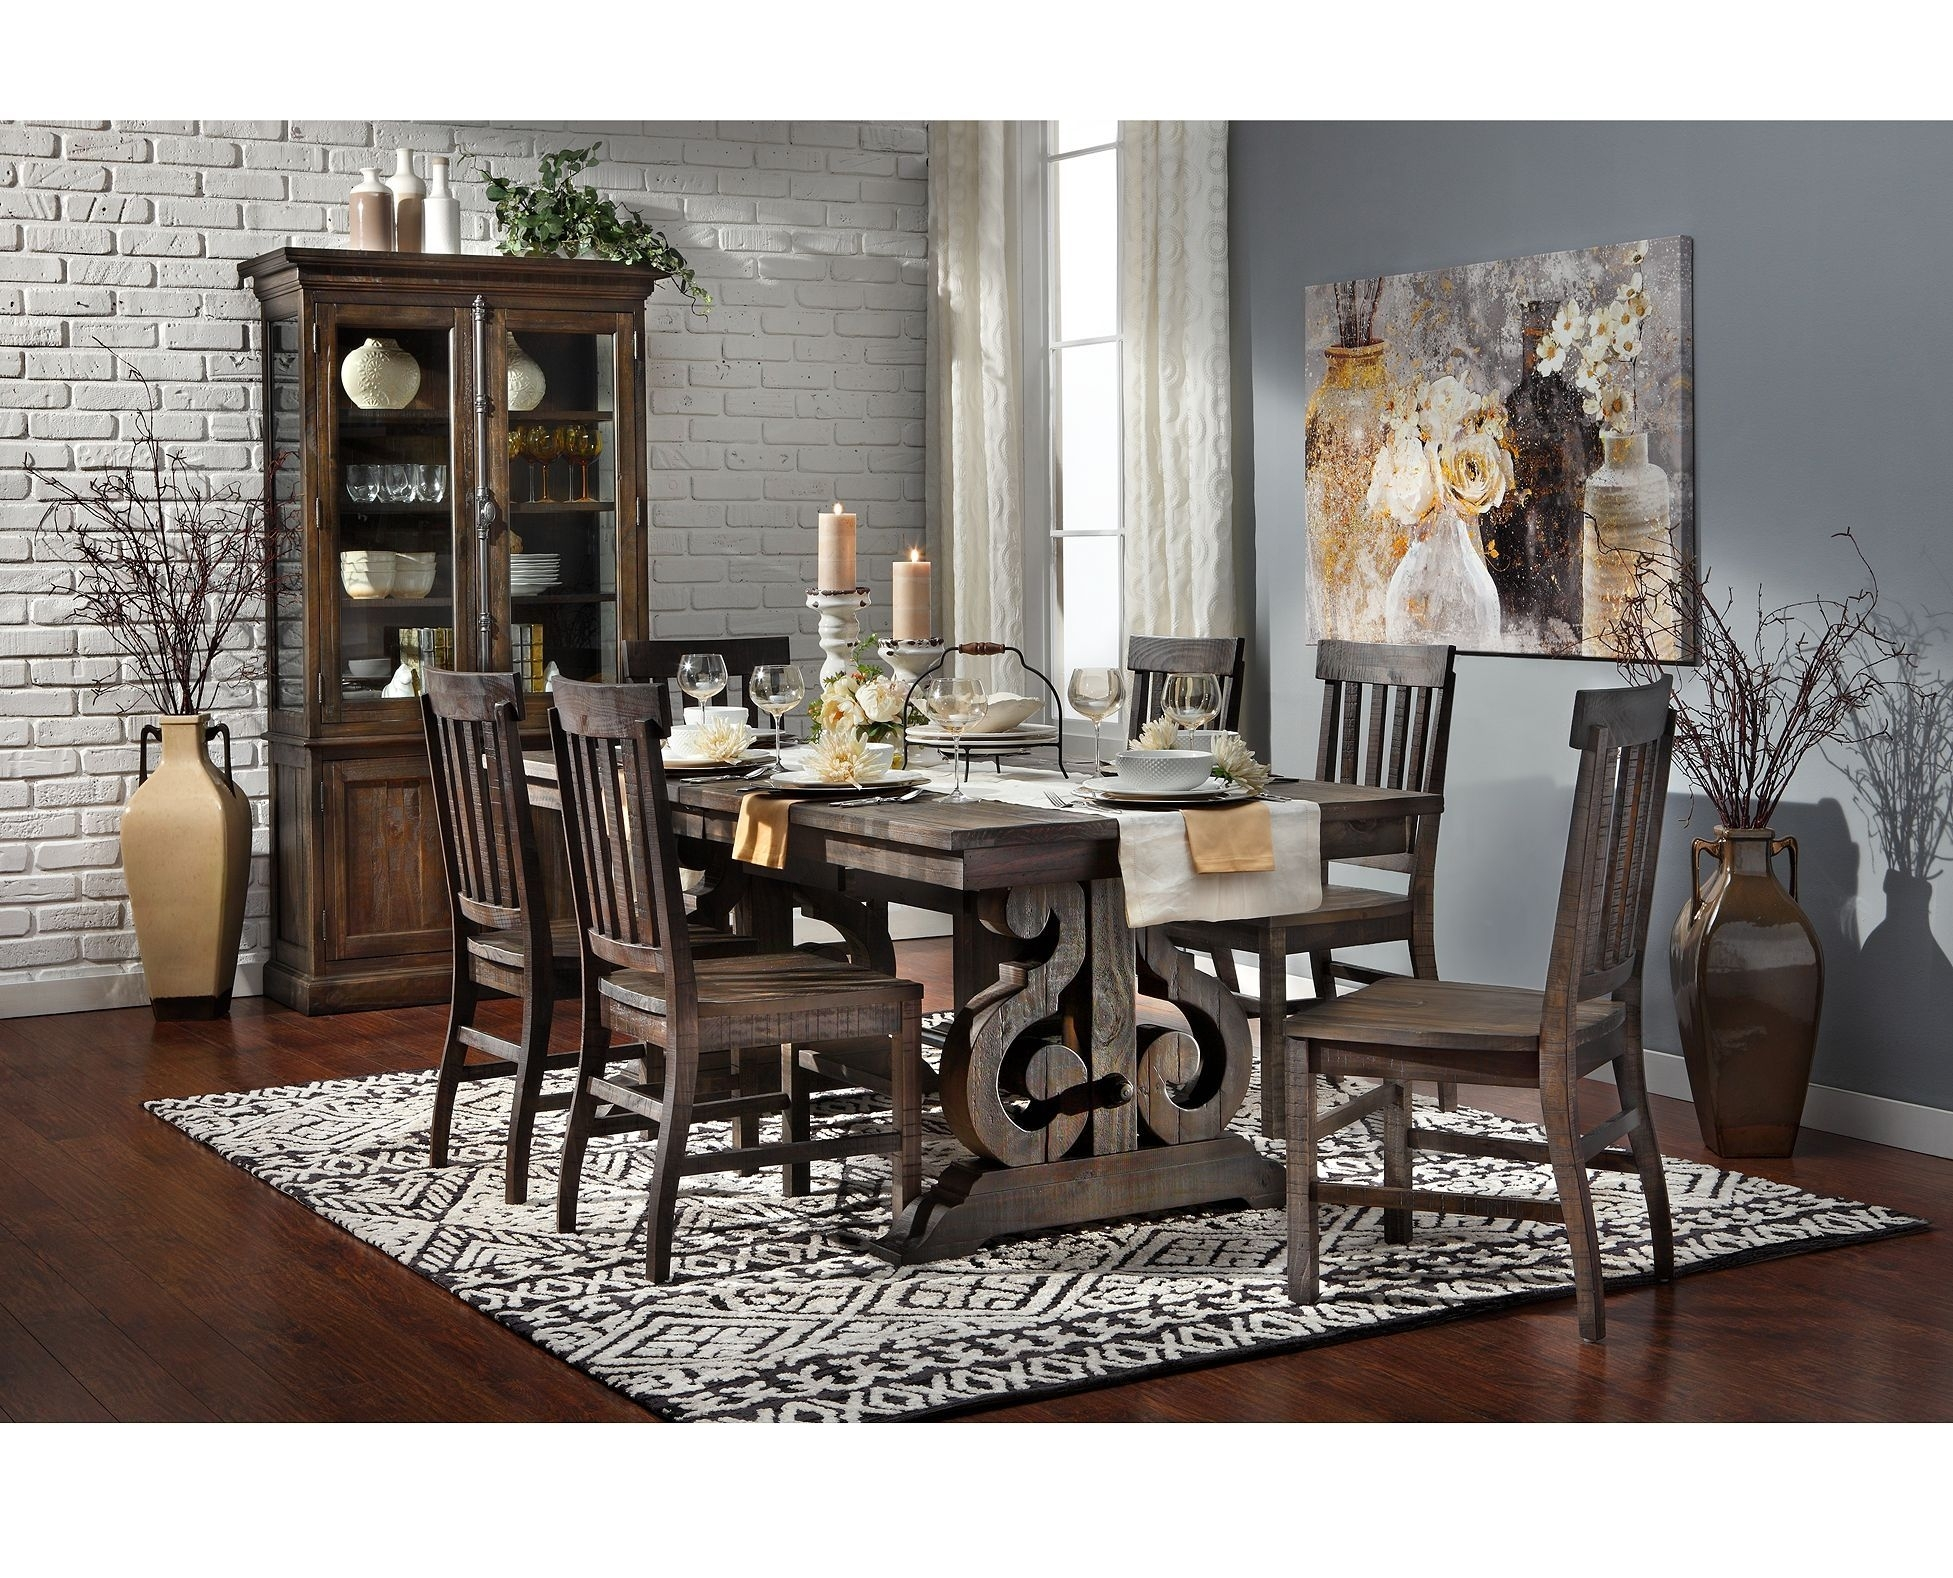 Sedona Dining Table | Dining Room | Pinterest | Dining, Magnolia With Regard To Most Up To Date Magnolia Home Taper Turned Bench Gathering Tables With Zinc Top (Image 12 of 20)